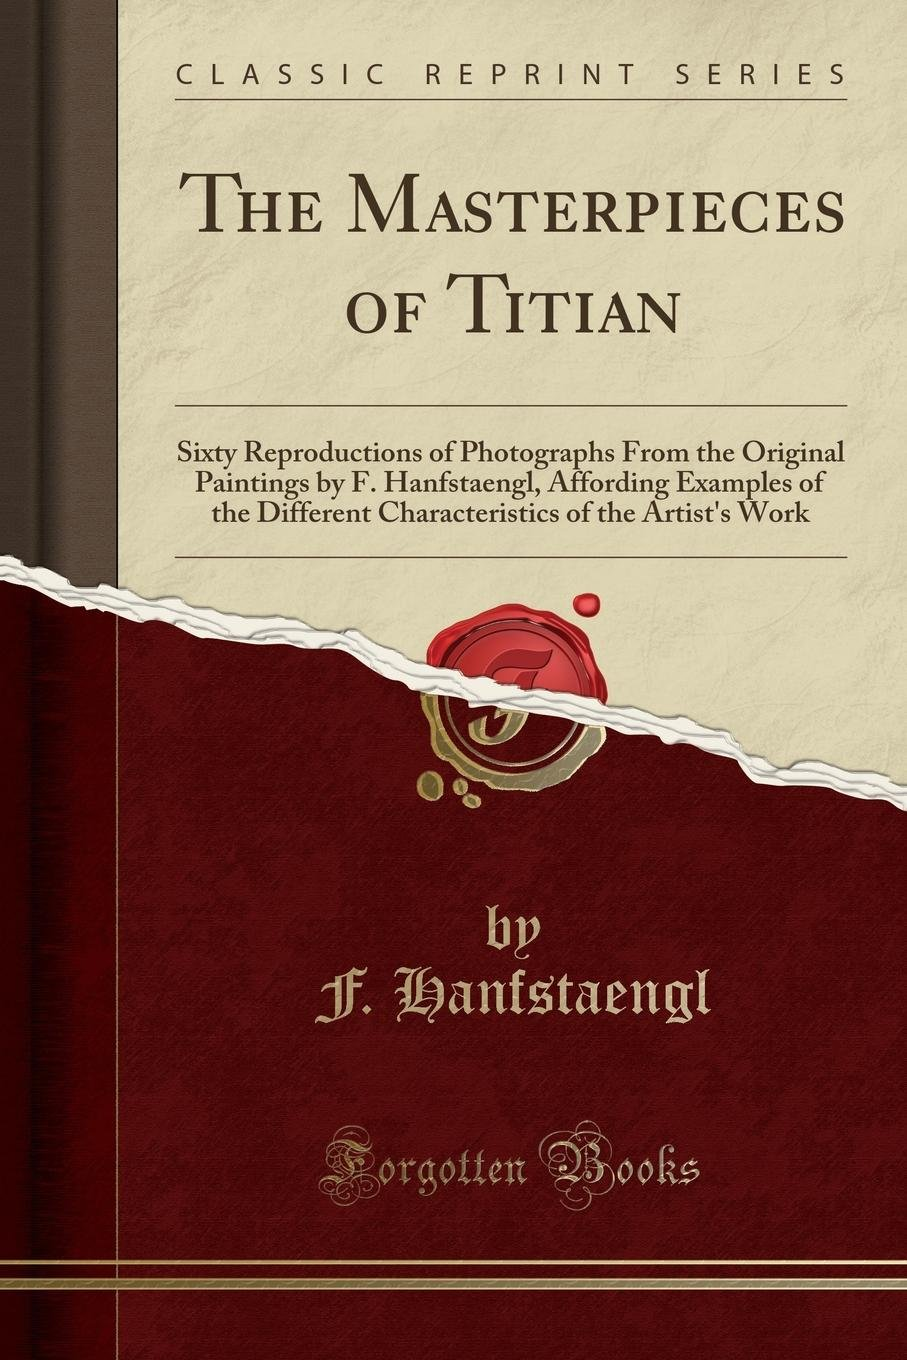 The Masterpieces of Titian: Sixty Reproductions of Photographs from the Original Paintings by F. Hanfstaengl, Affording Examples of the Different Characteristics of the Artist's Work (Classic Reprint) ebook